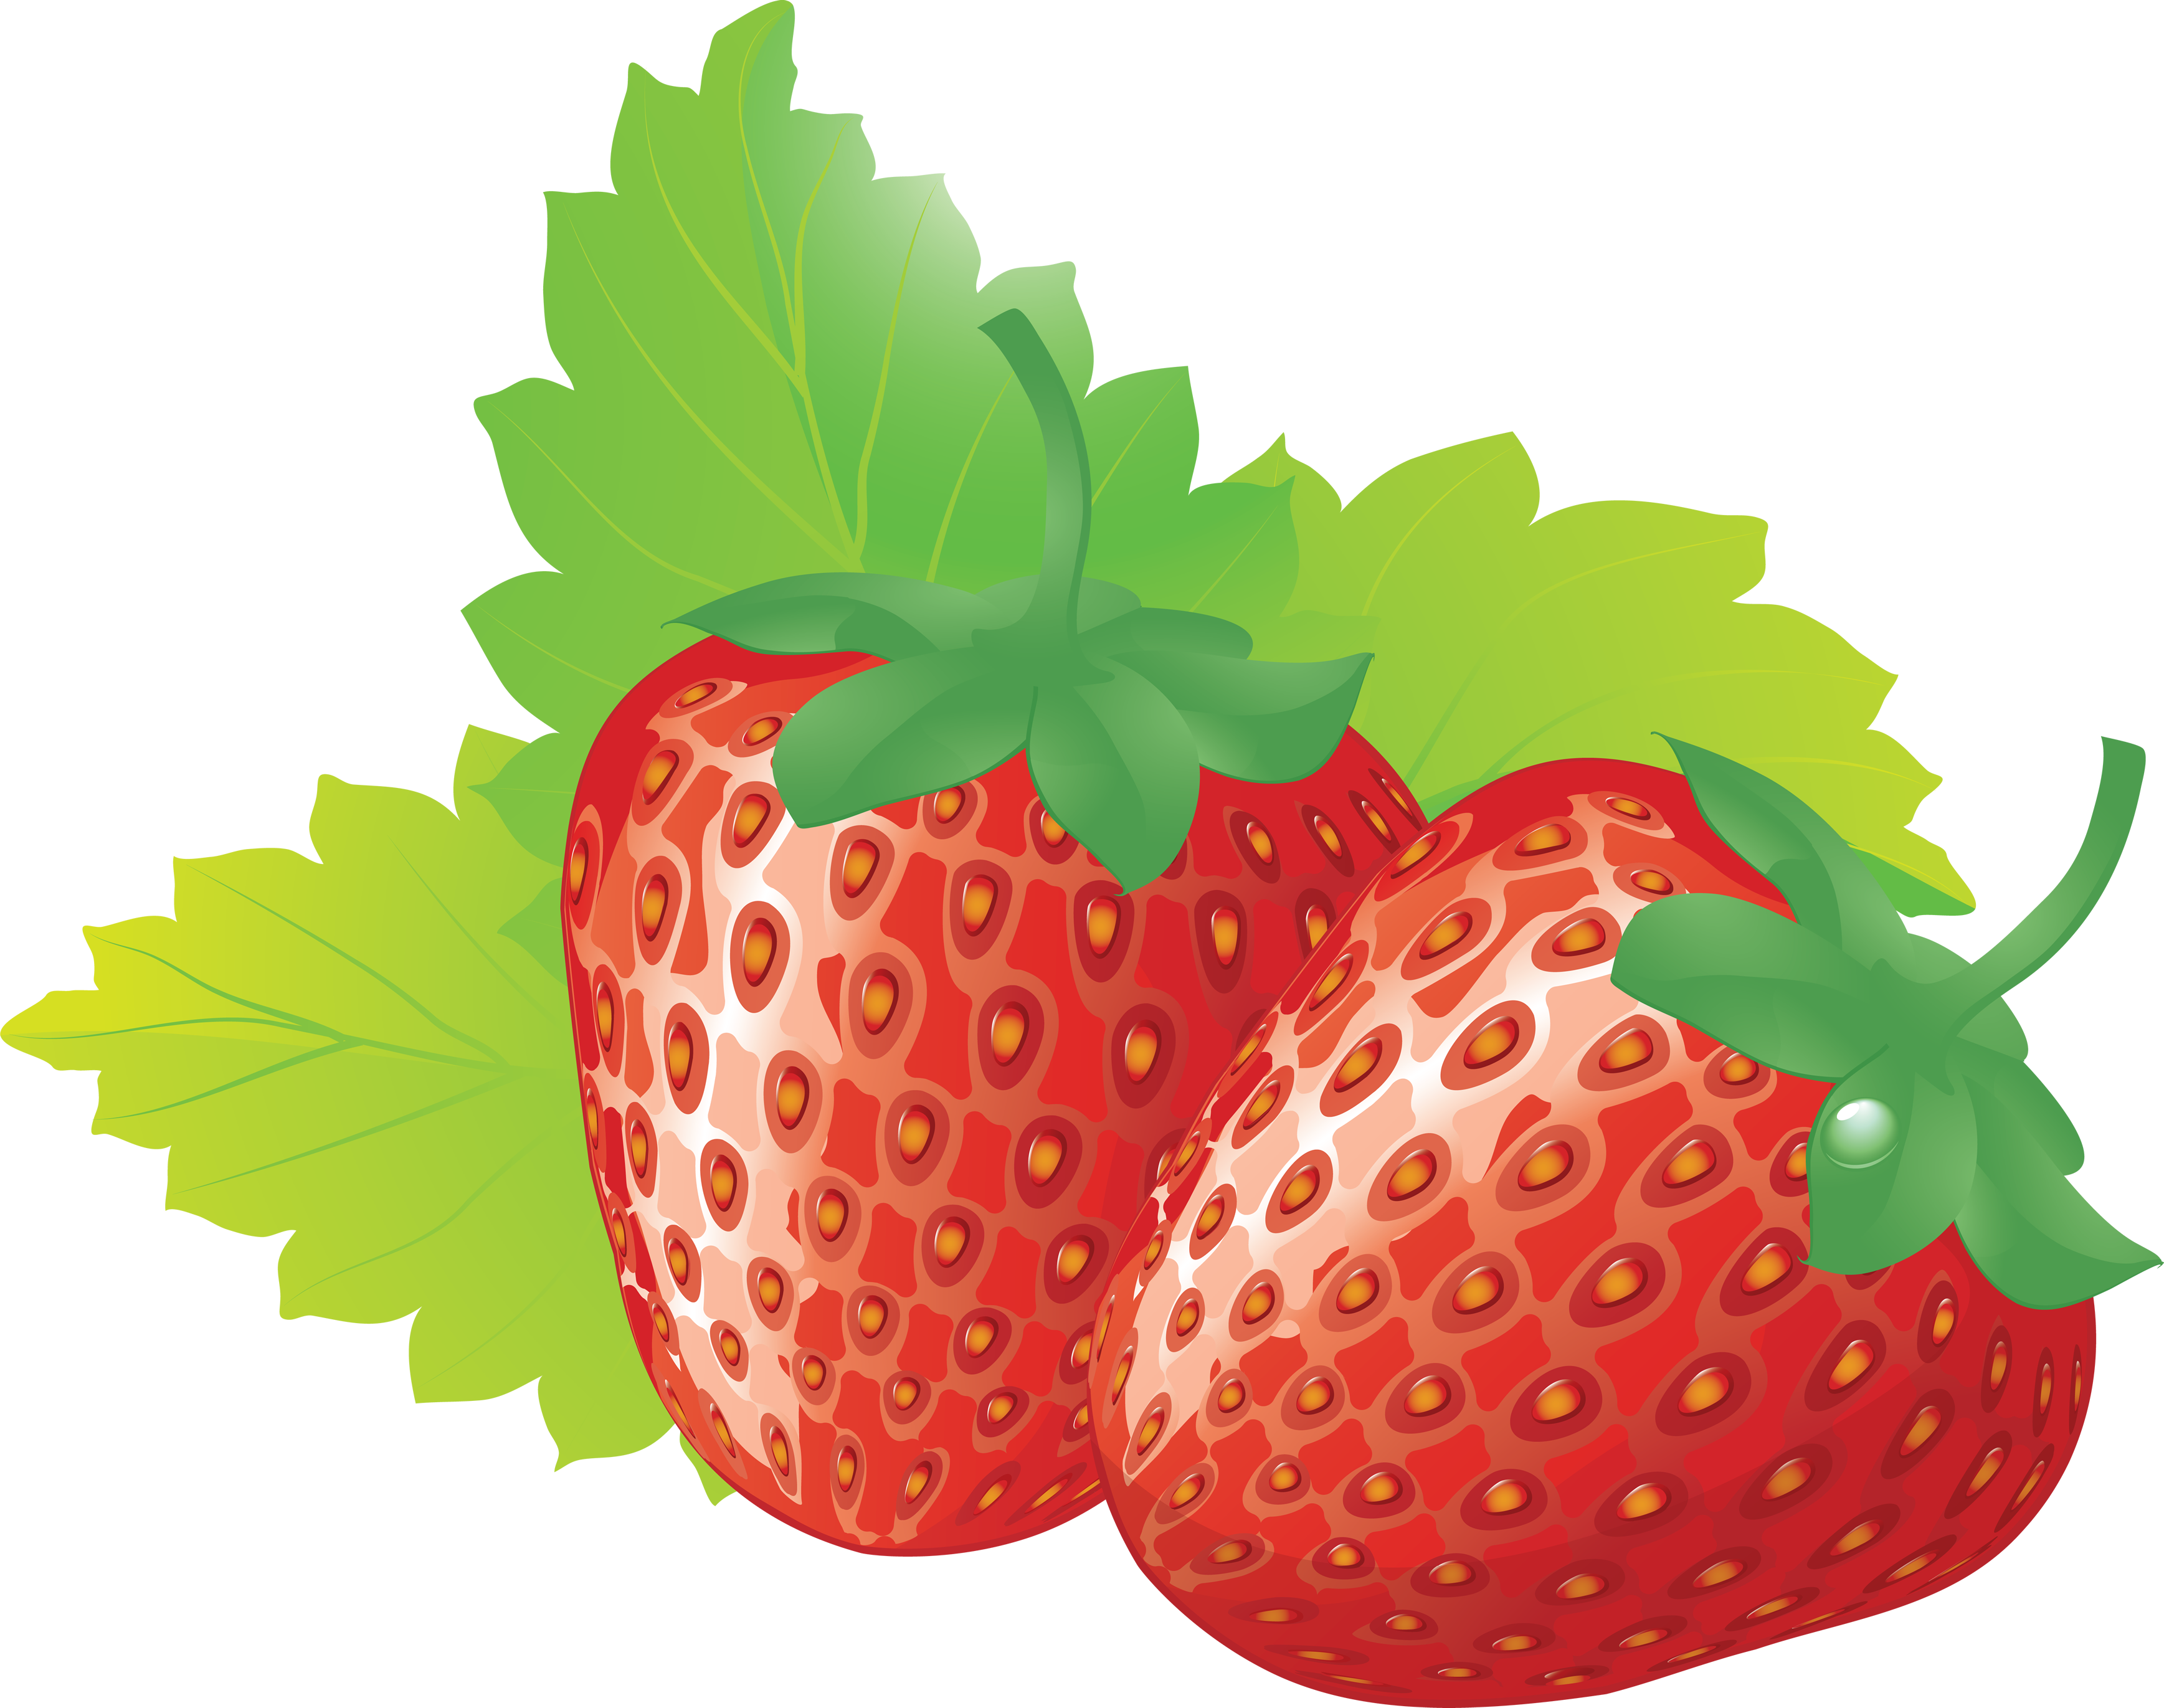 Strawberries clipart clear background. Strawberry png image picture